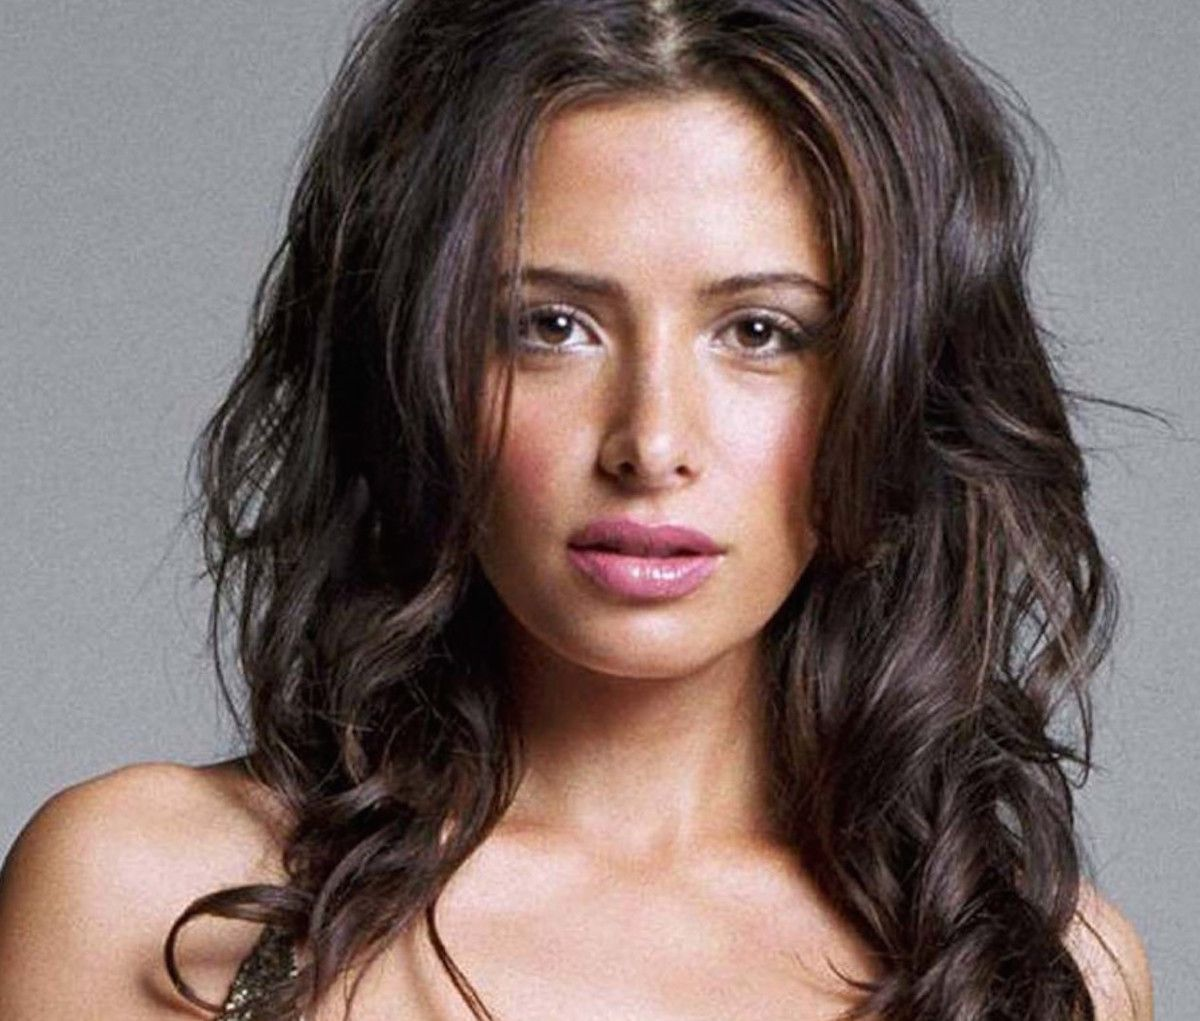 ICloud Sarah Shahi nudes (82 foto and video), Sexy, Sideboobs, Instagram, swimsuit 2019